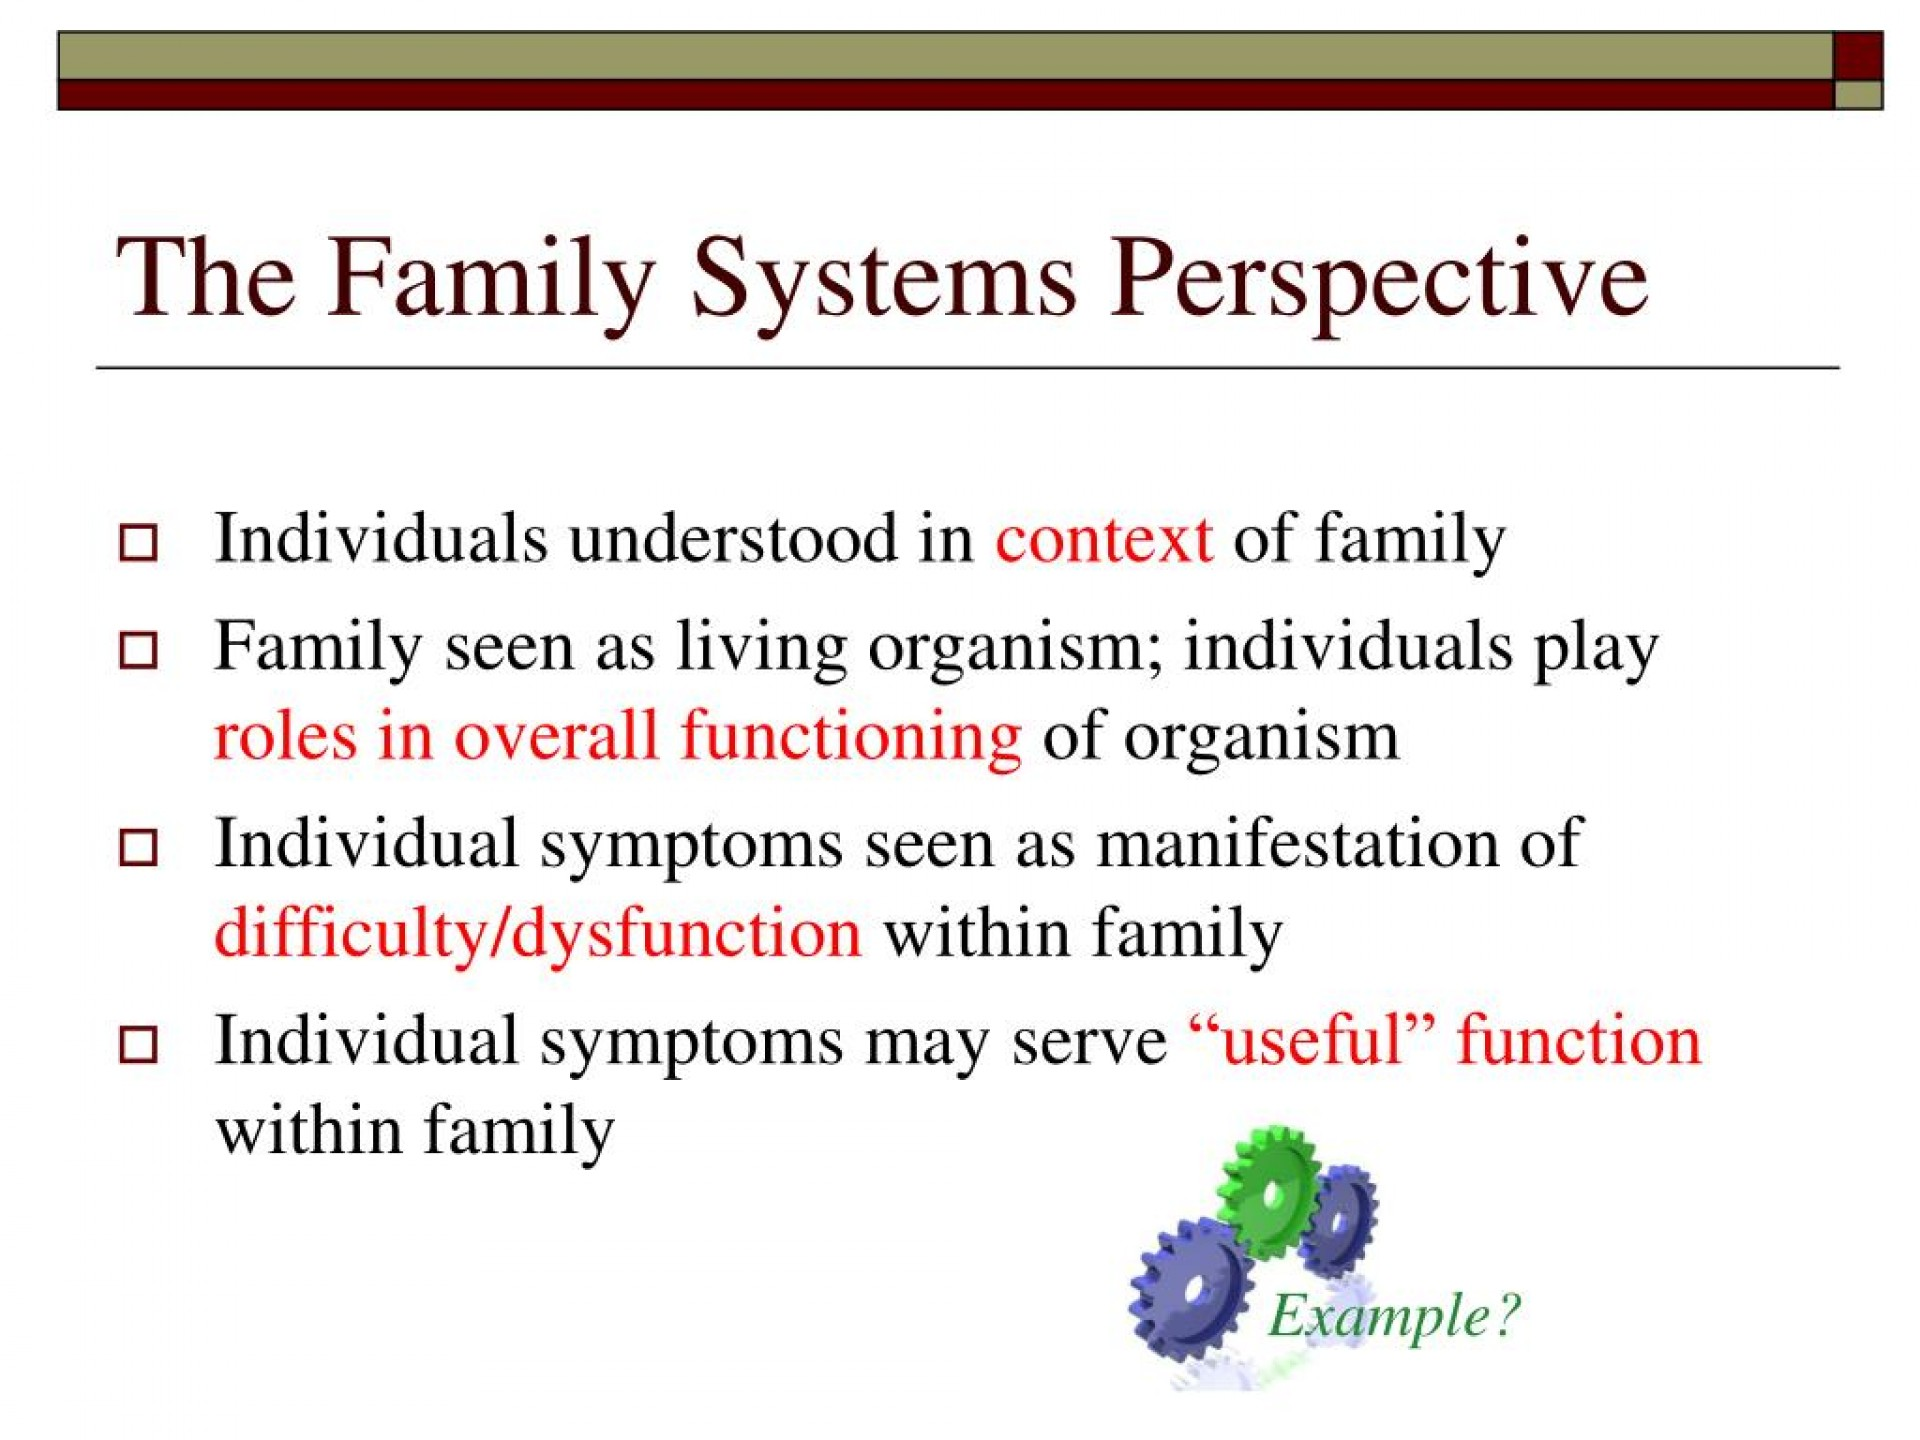 015 Essay Example The Family Systems Perspective L Incredible Uiuc University Of Illinois Samples Examples Help 1920